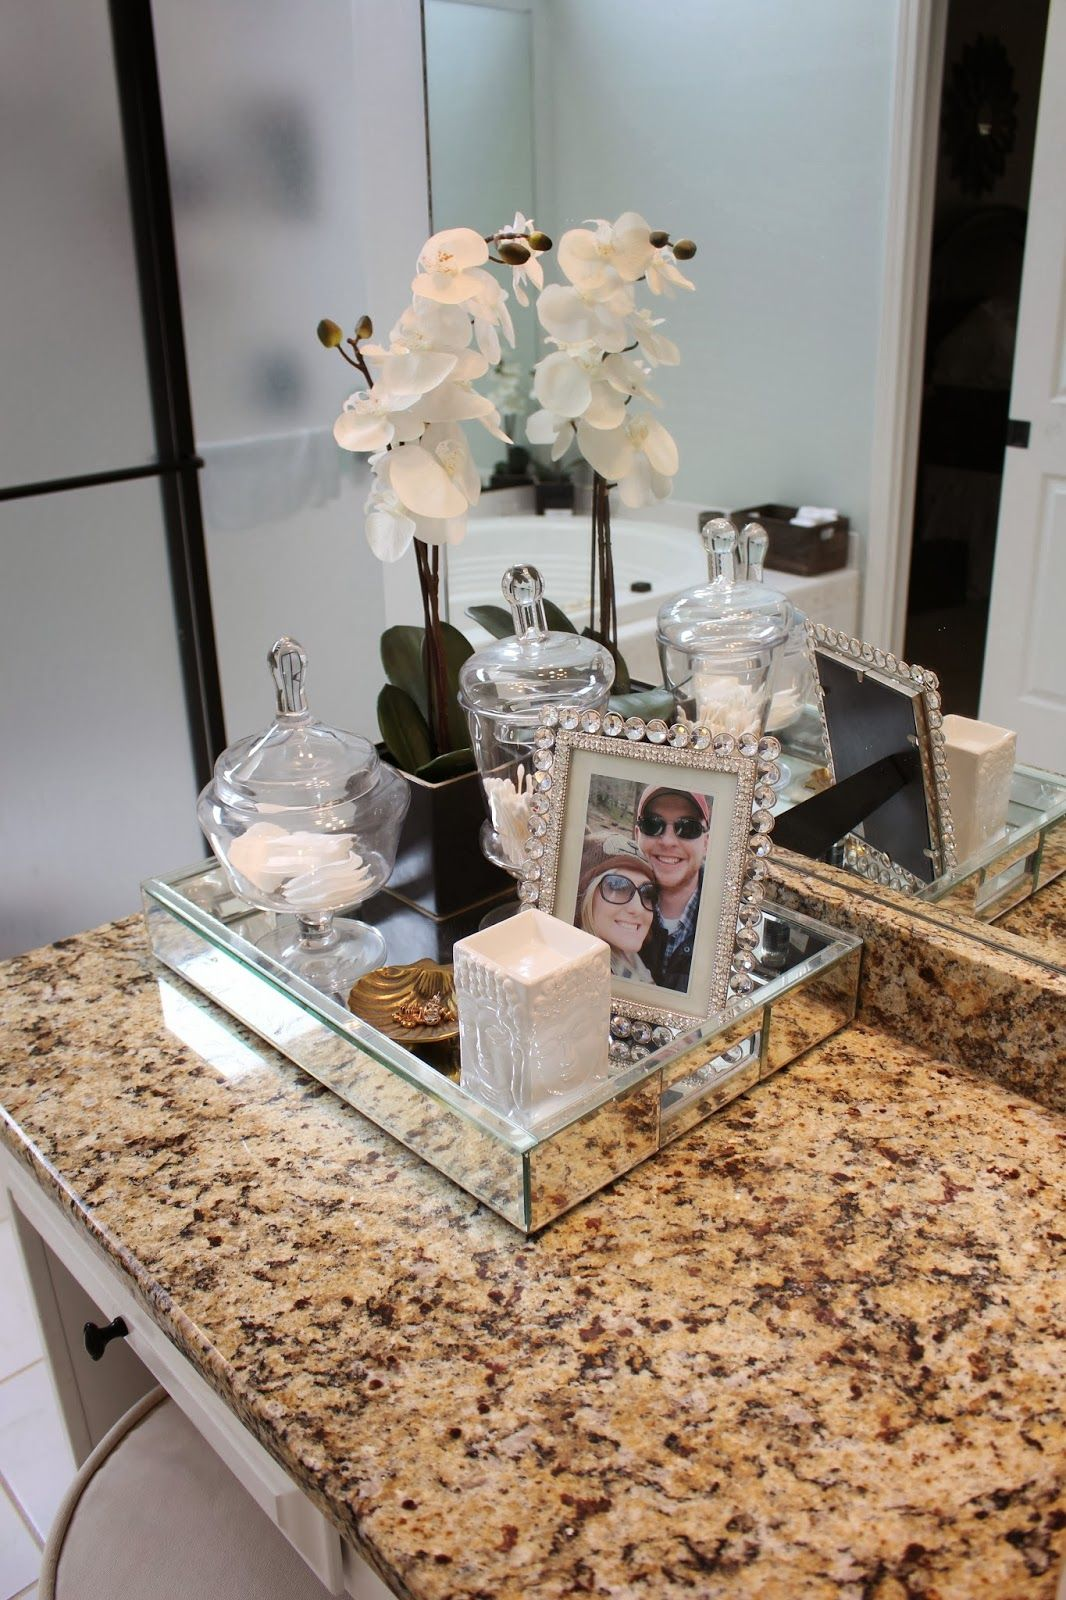 A Spa Bathroom Re Do Bathroom Counter Decor Bathroom Spa Bathroom Countertops